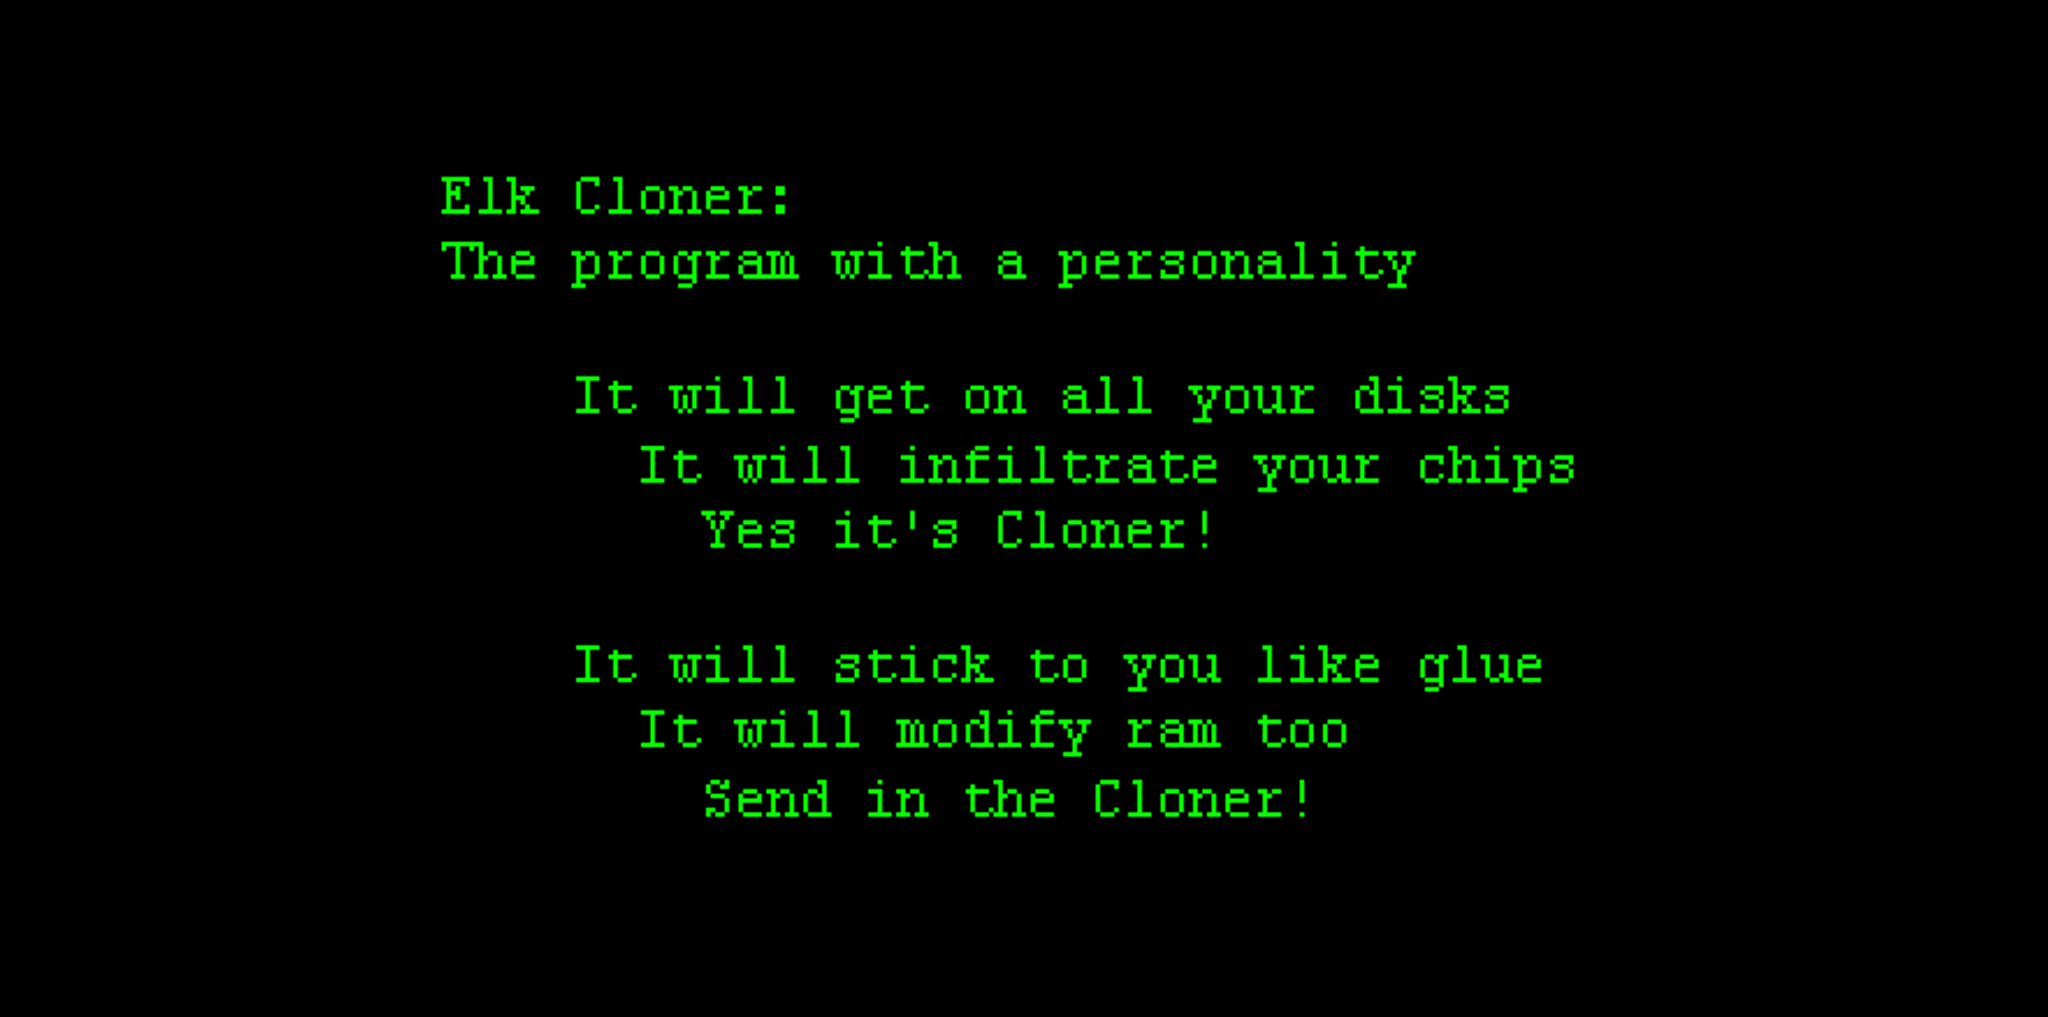 Example of Elk Cloner Computer Virus